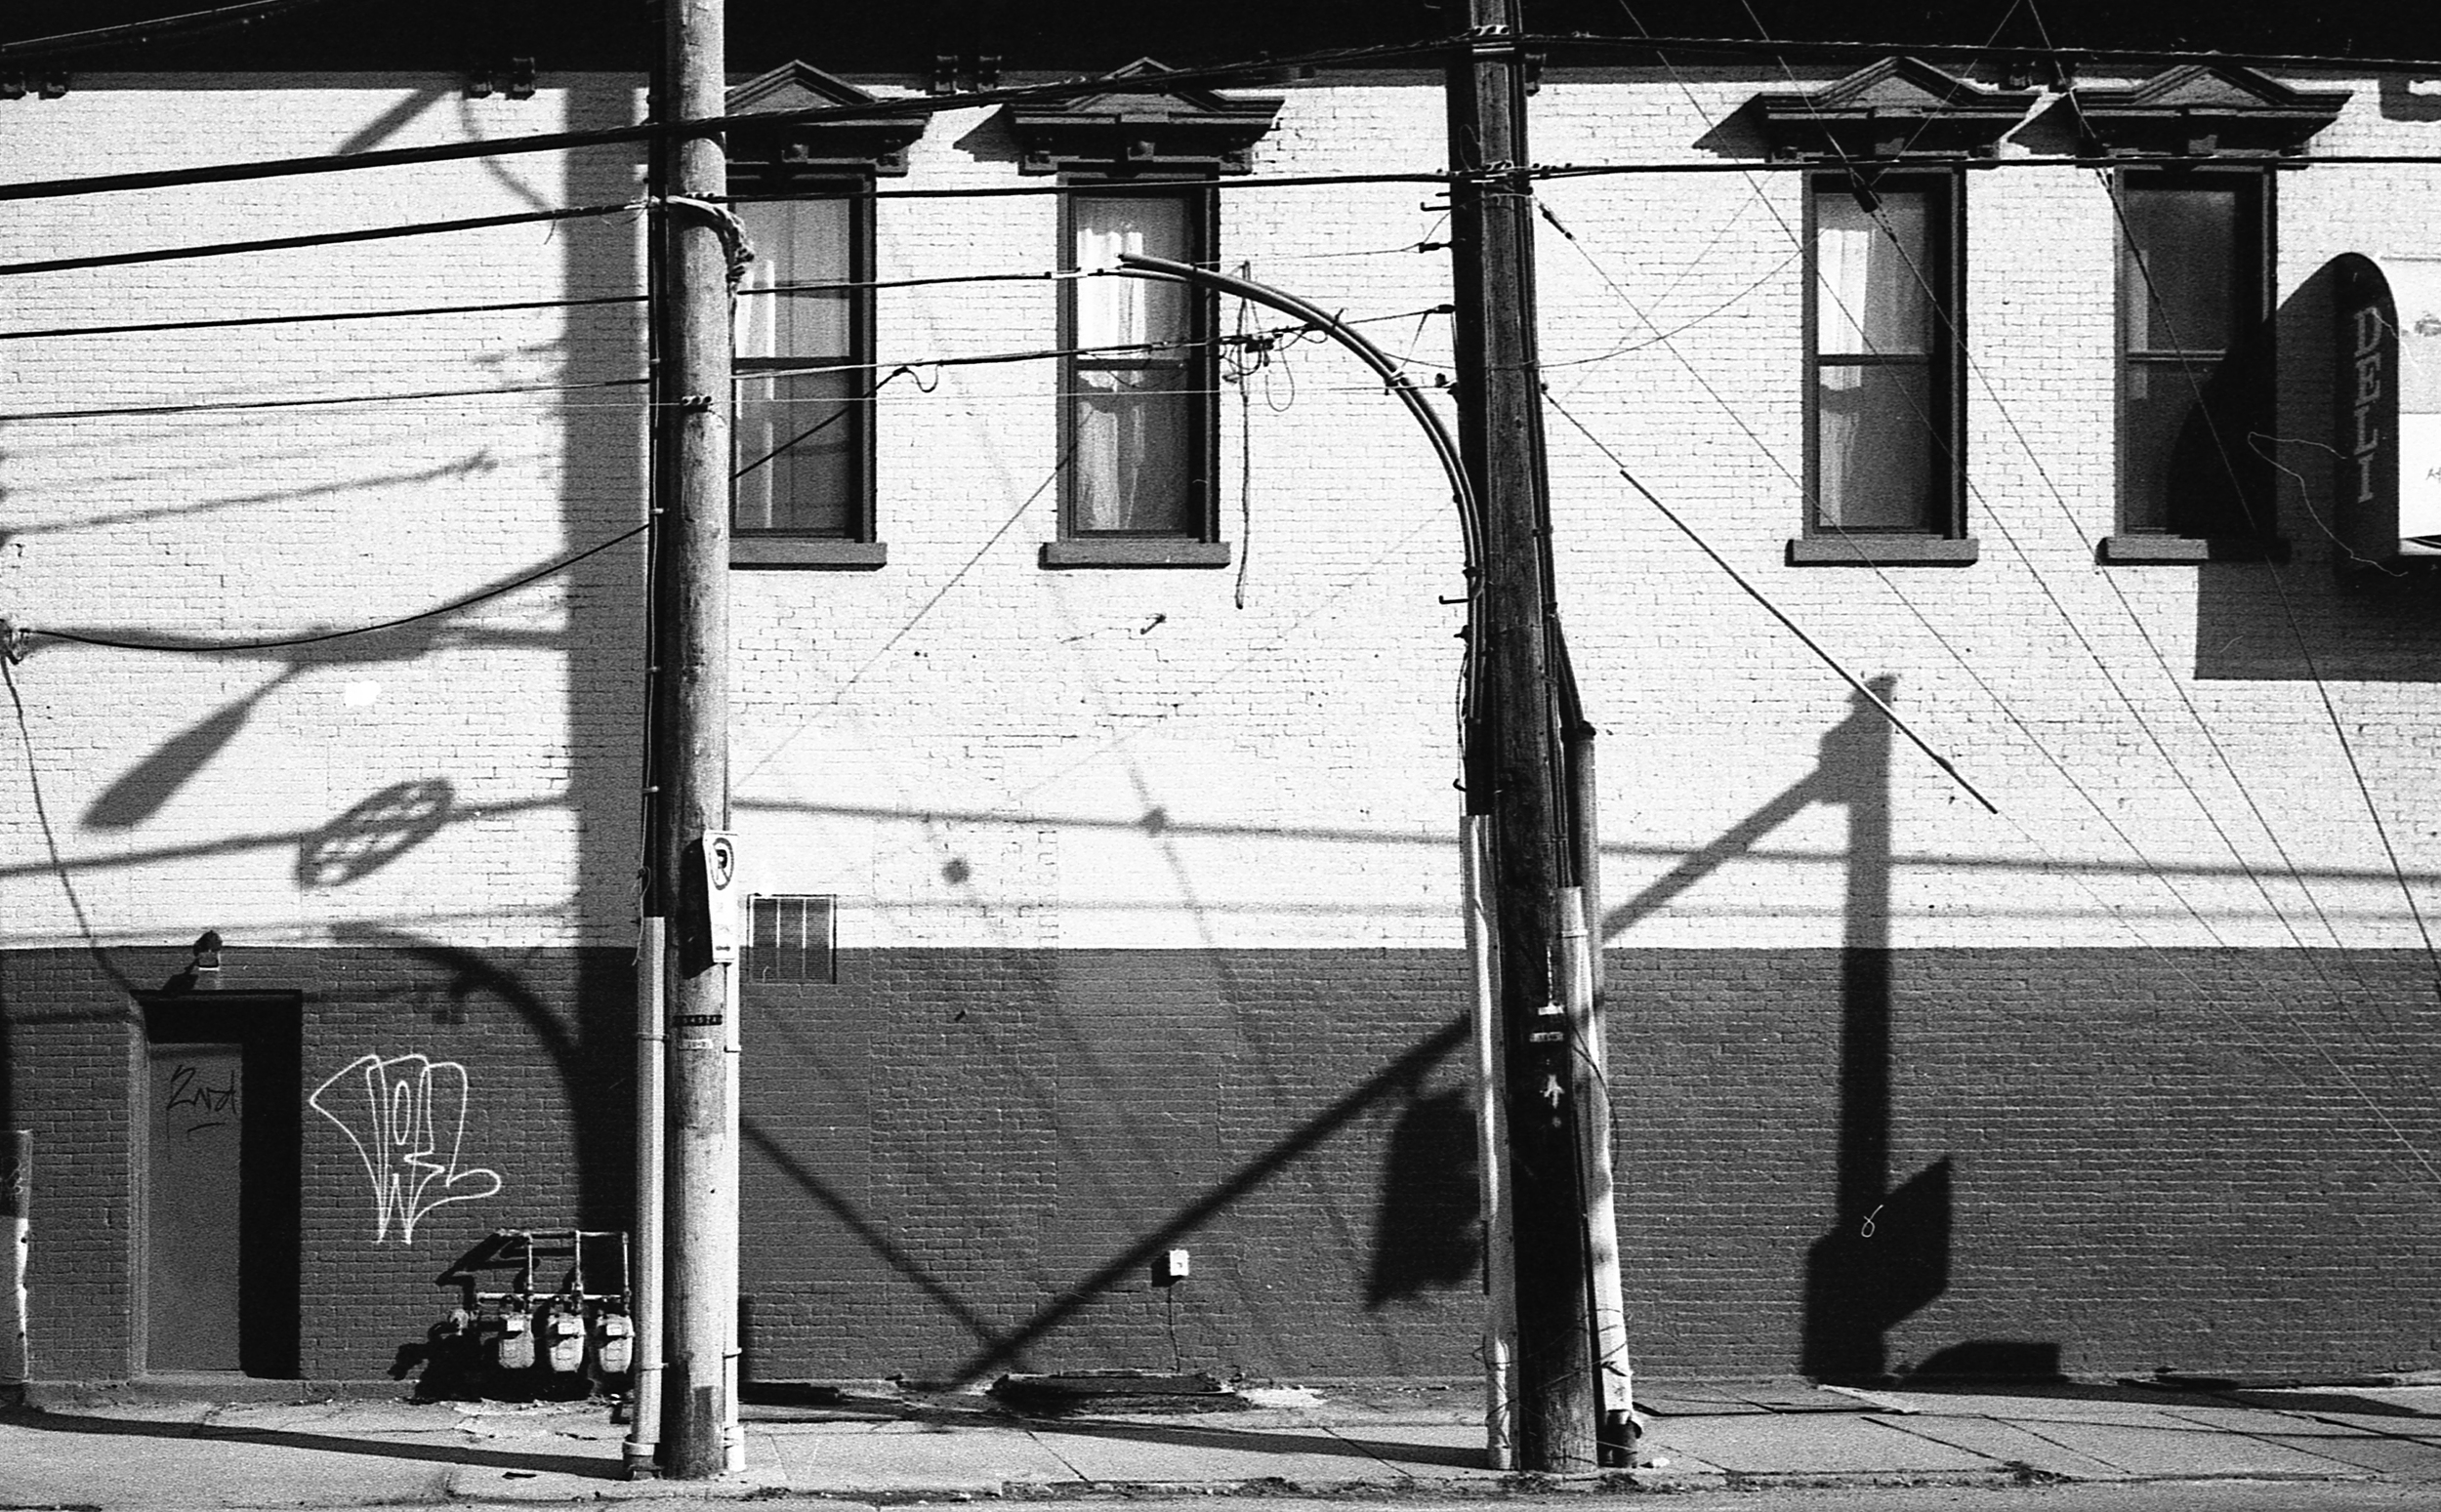 In the shadows of giants - Oakland (Fifth &Neville)   Tri-X 400 @ 1600